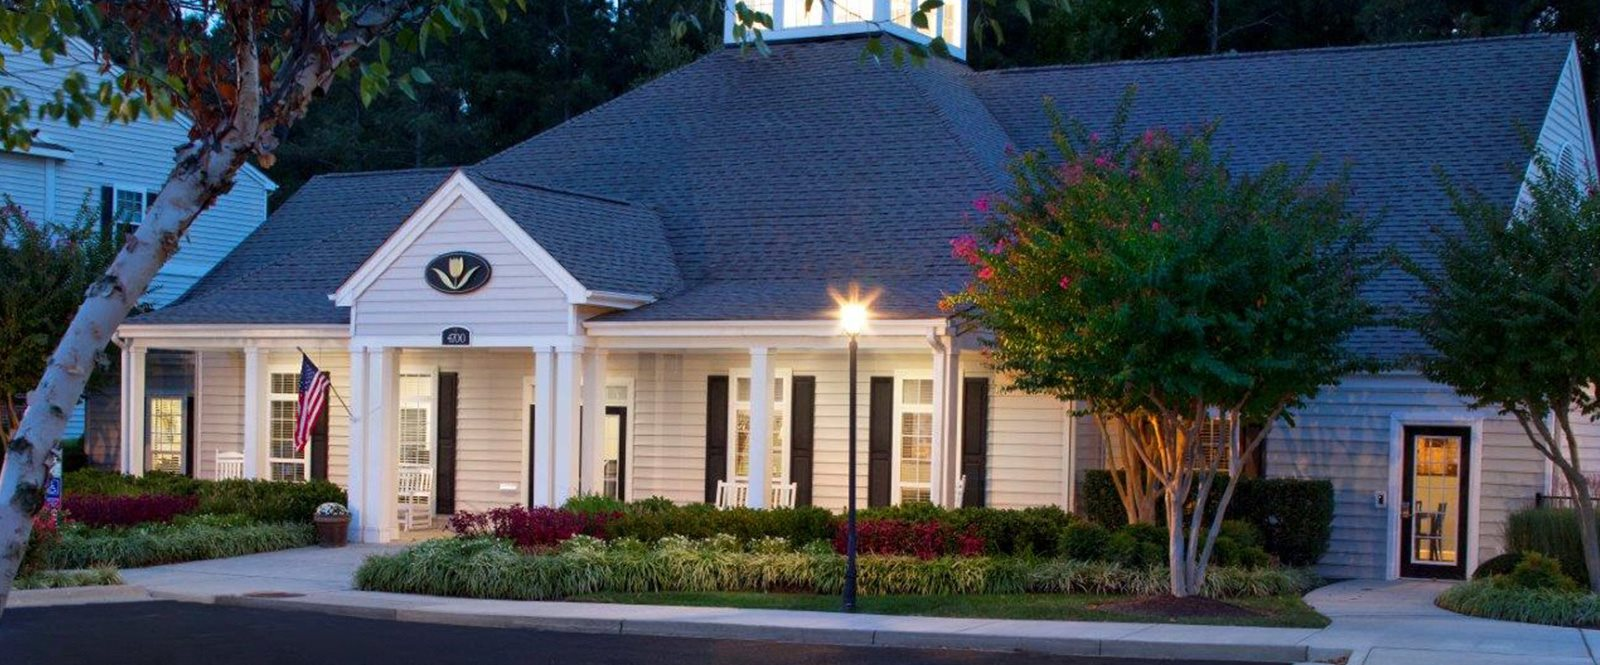 Community Clubhouse at Abberly Twin Hickory Apartment Homes by HHHunt, Virginia